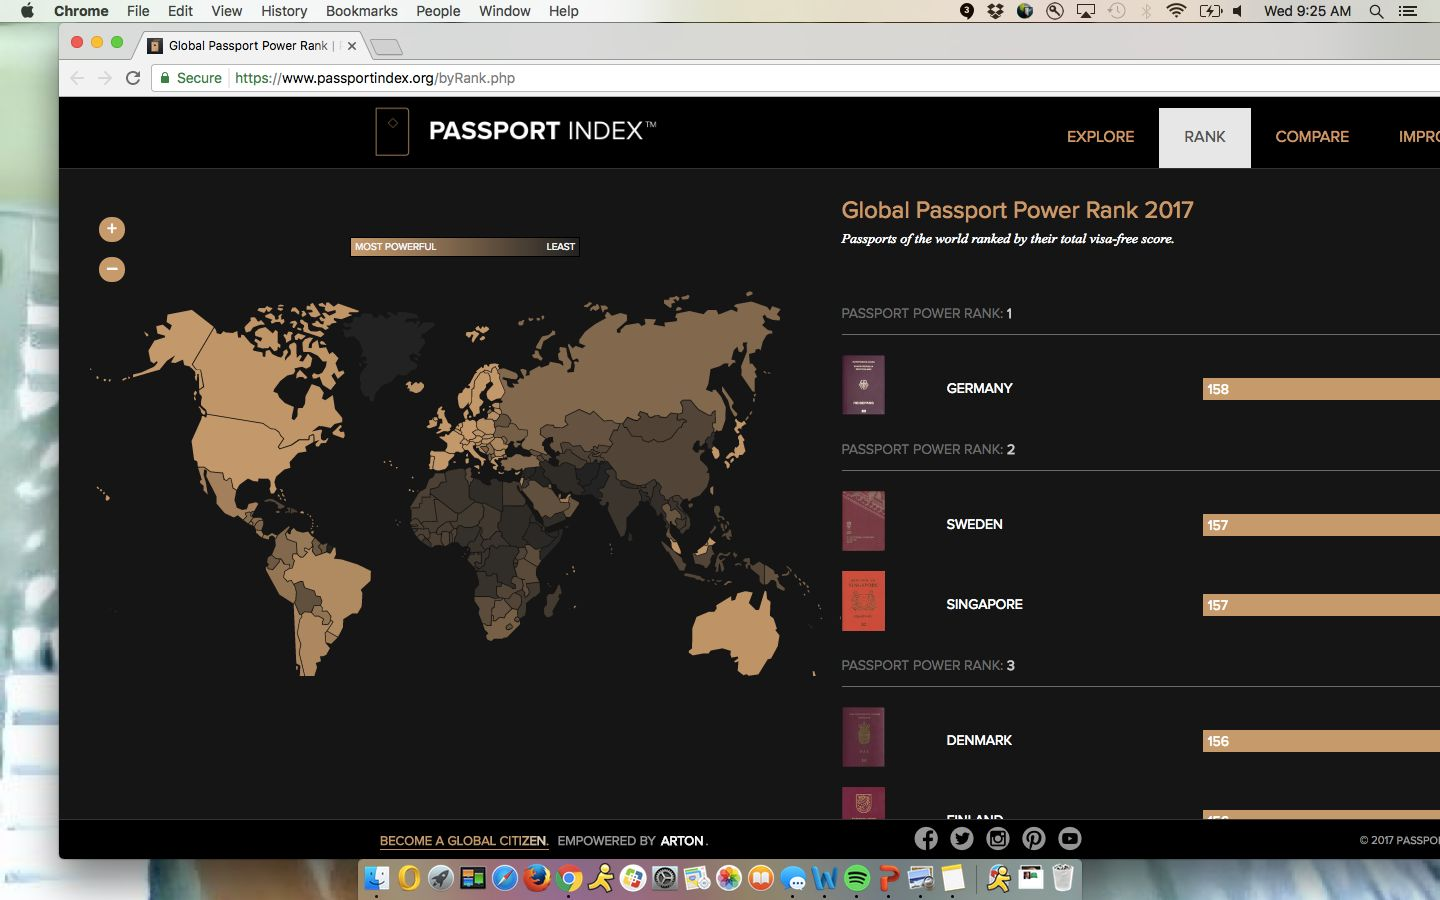 The World's Most Powerful Passports, Ranked In Real